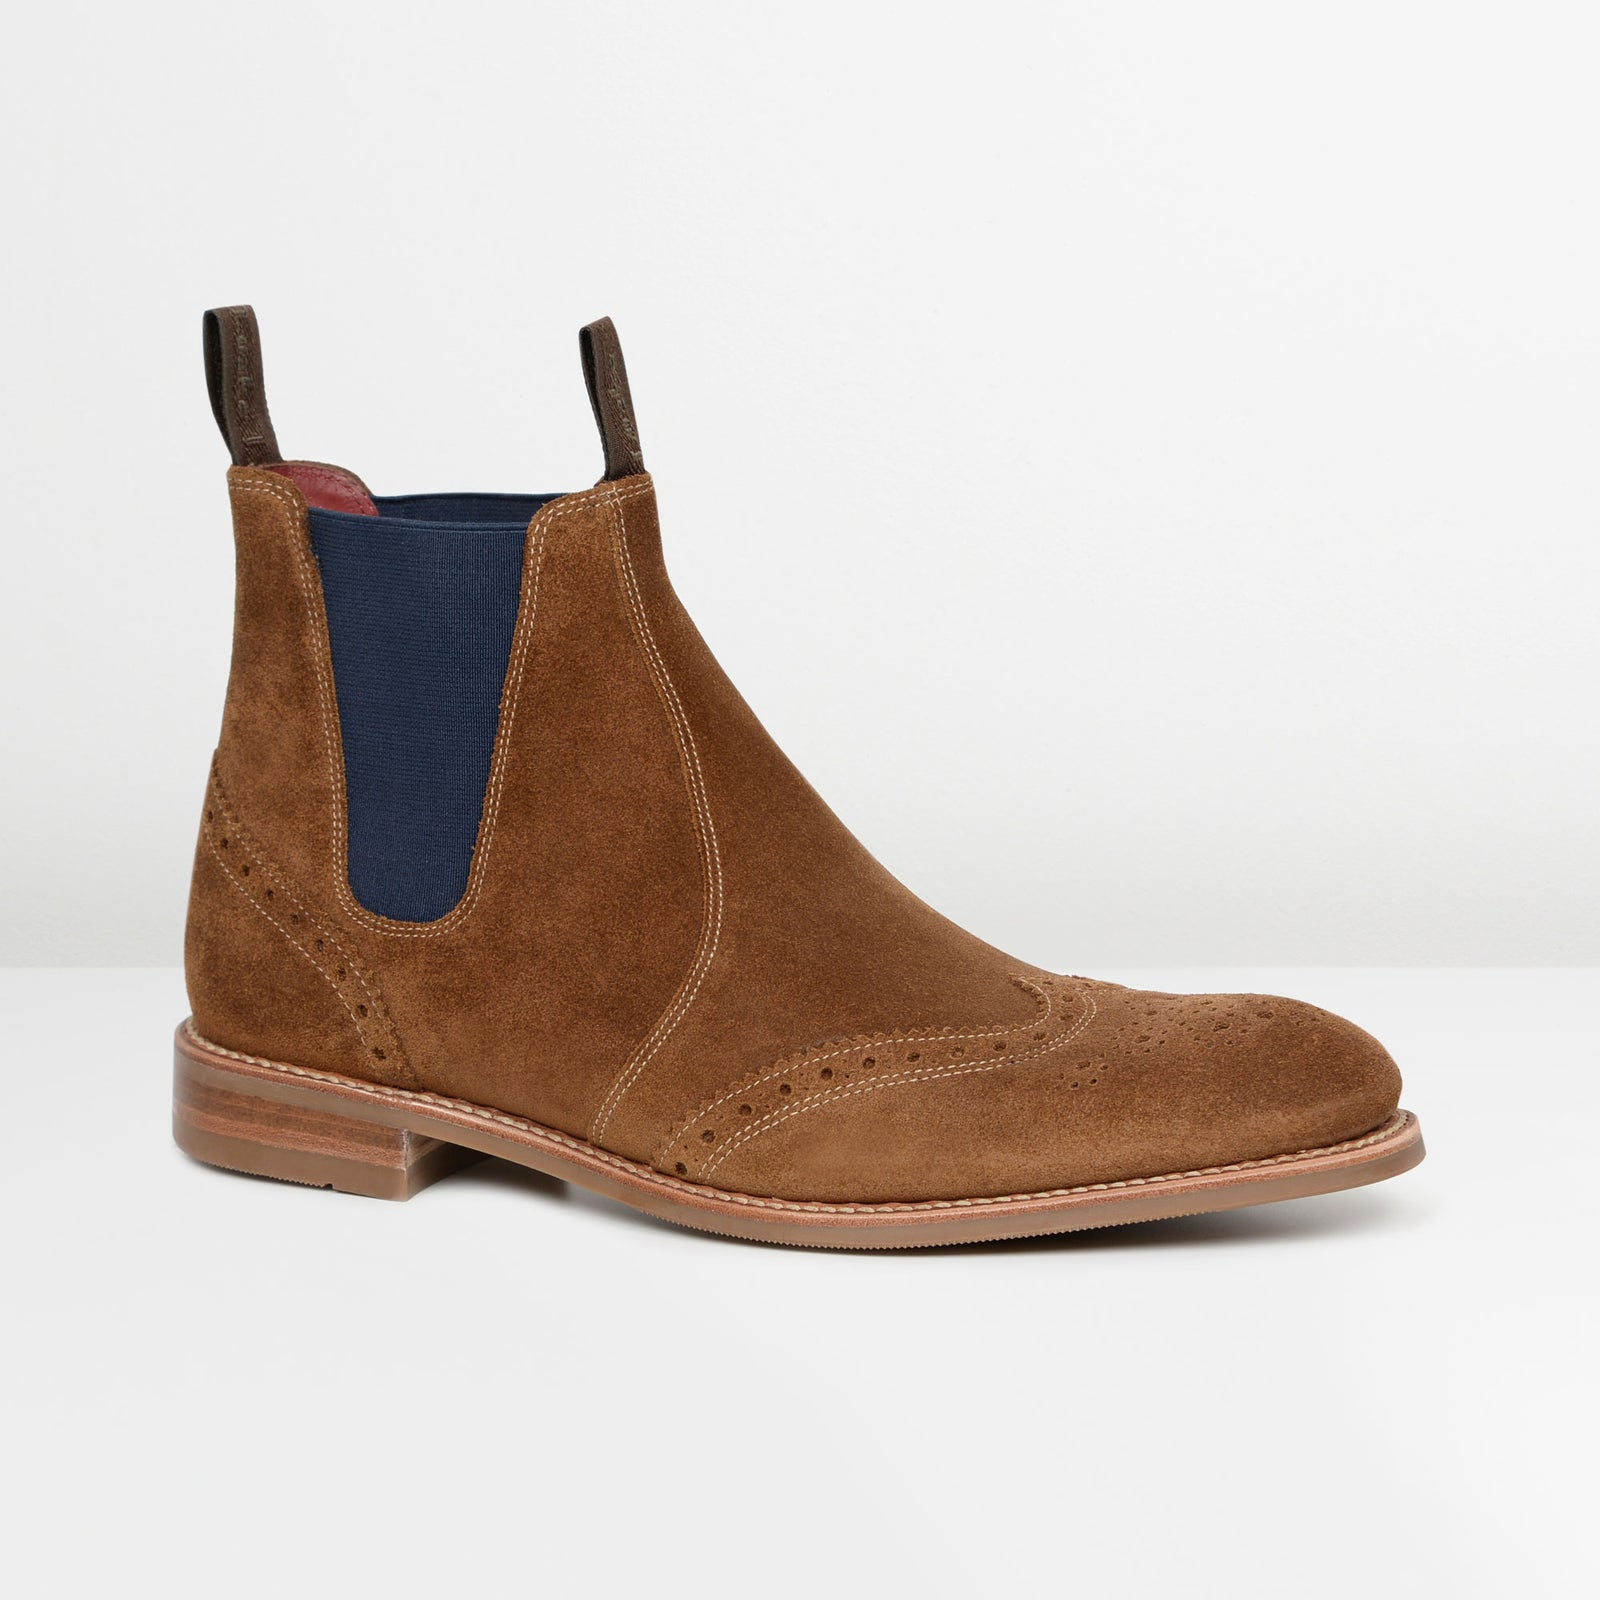 Tan Suede Hoskins Brogue Chelsea Boots